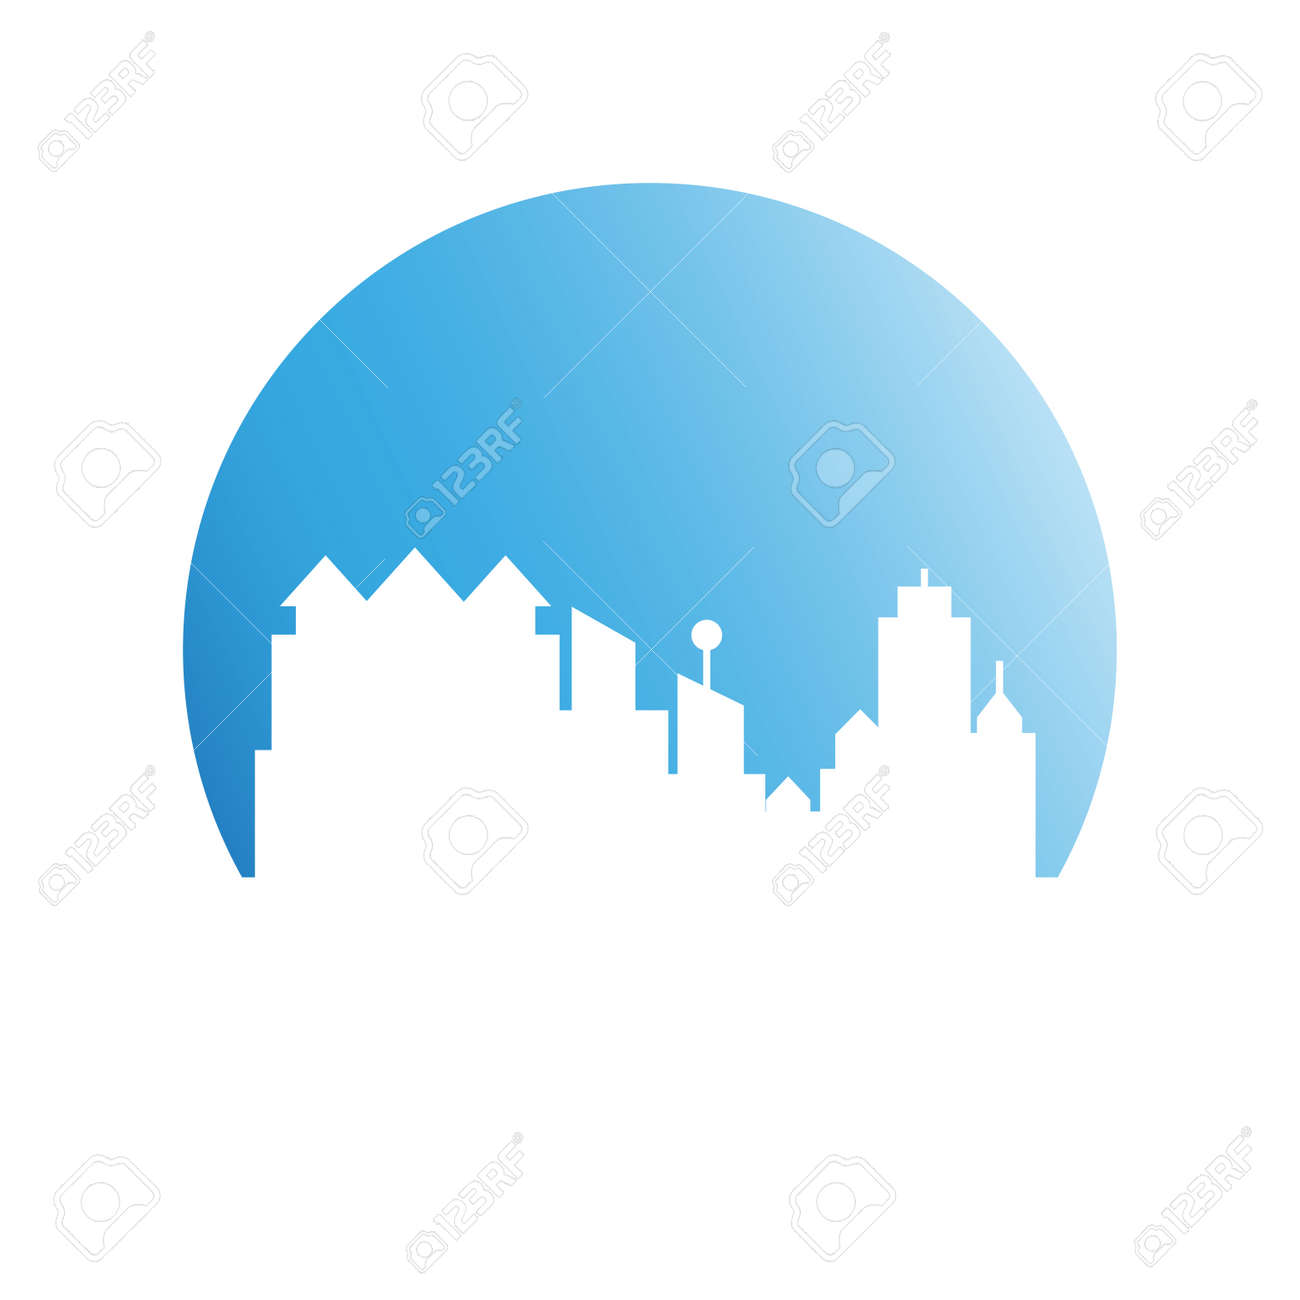 building, city skyline in blue circle - 127014272